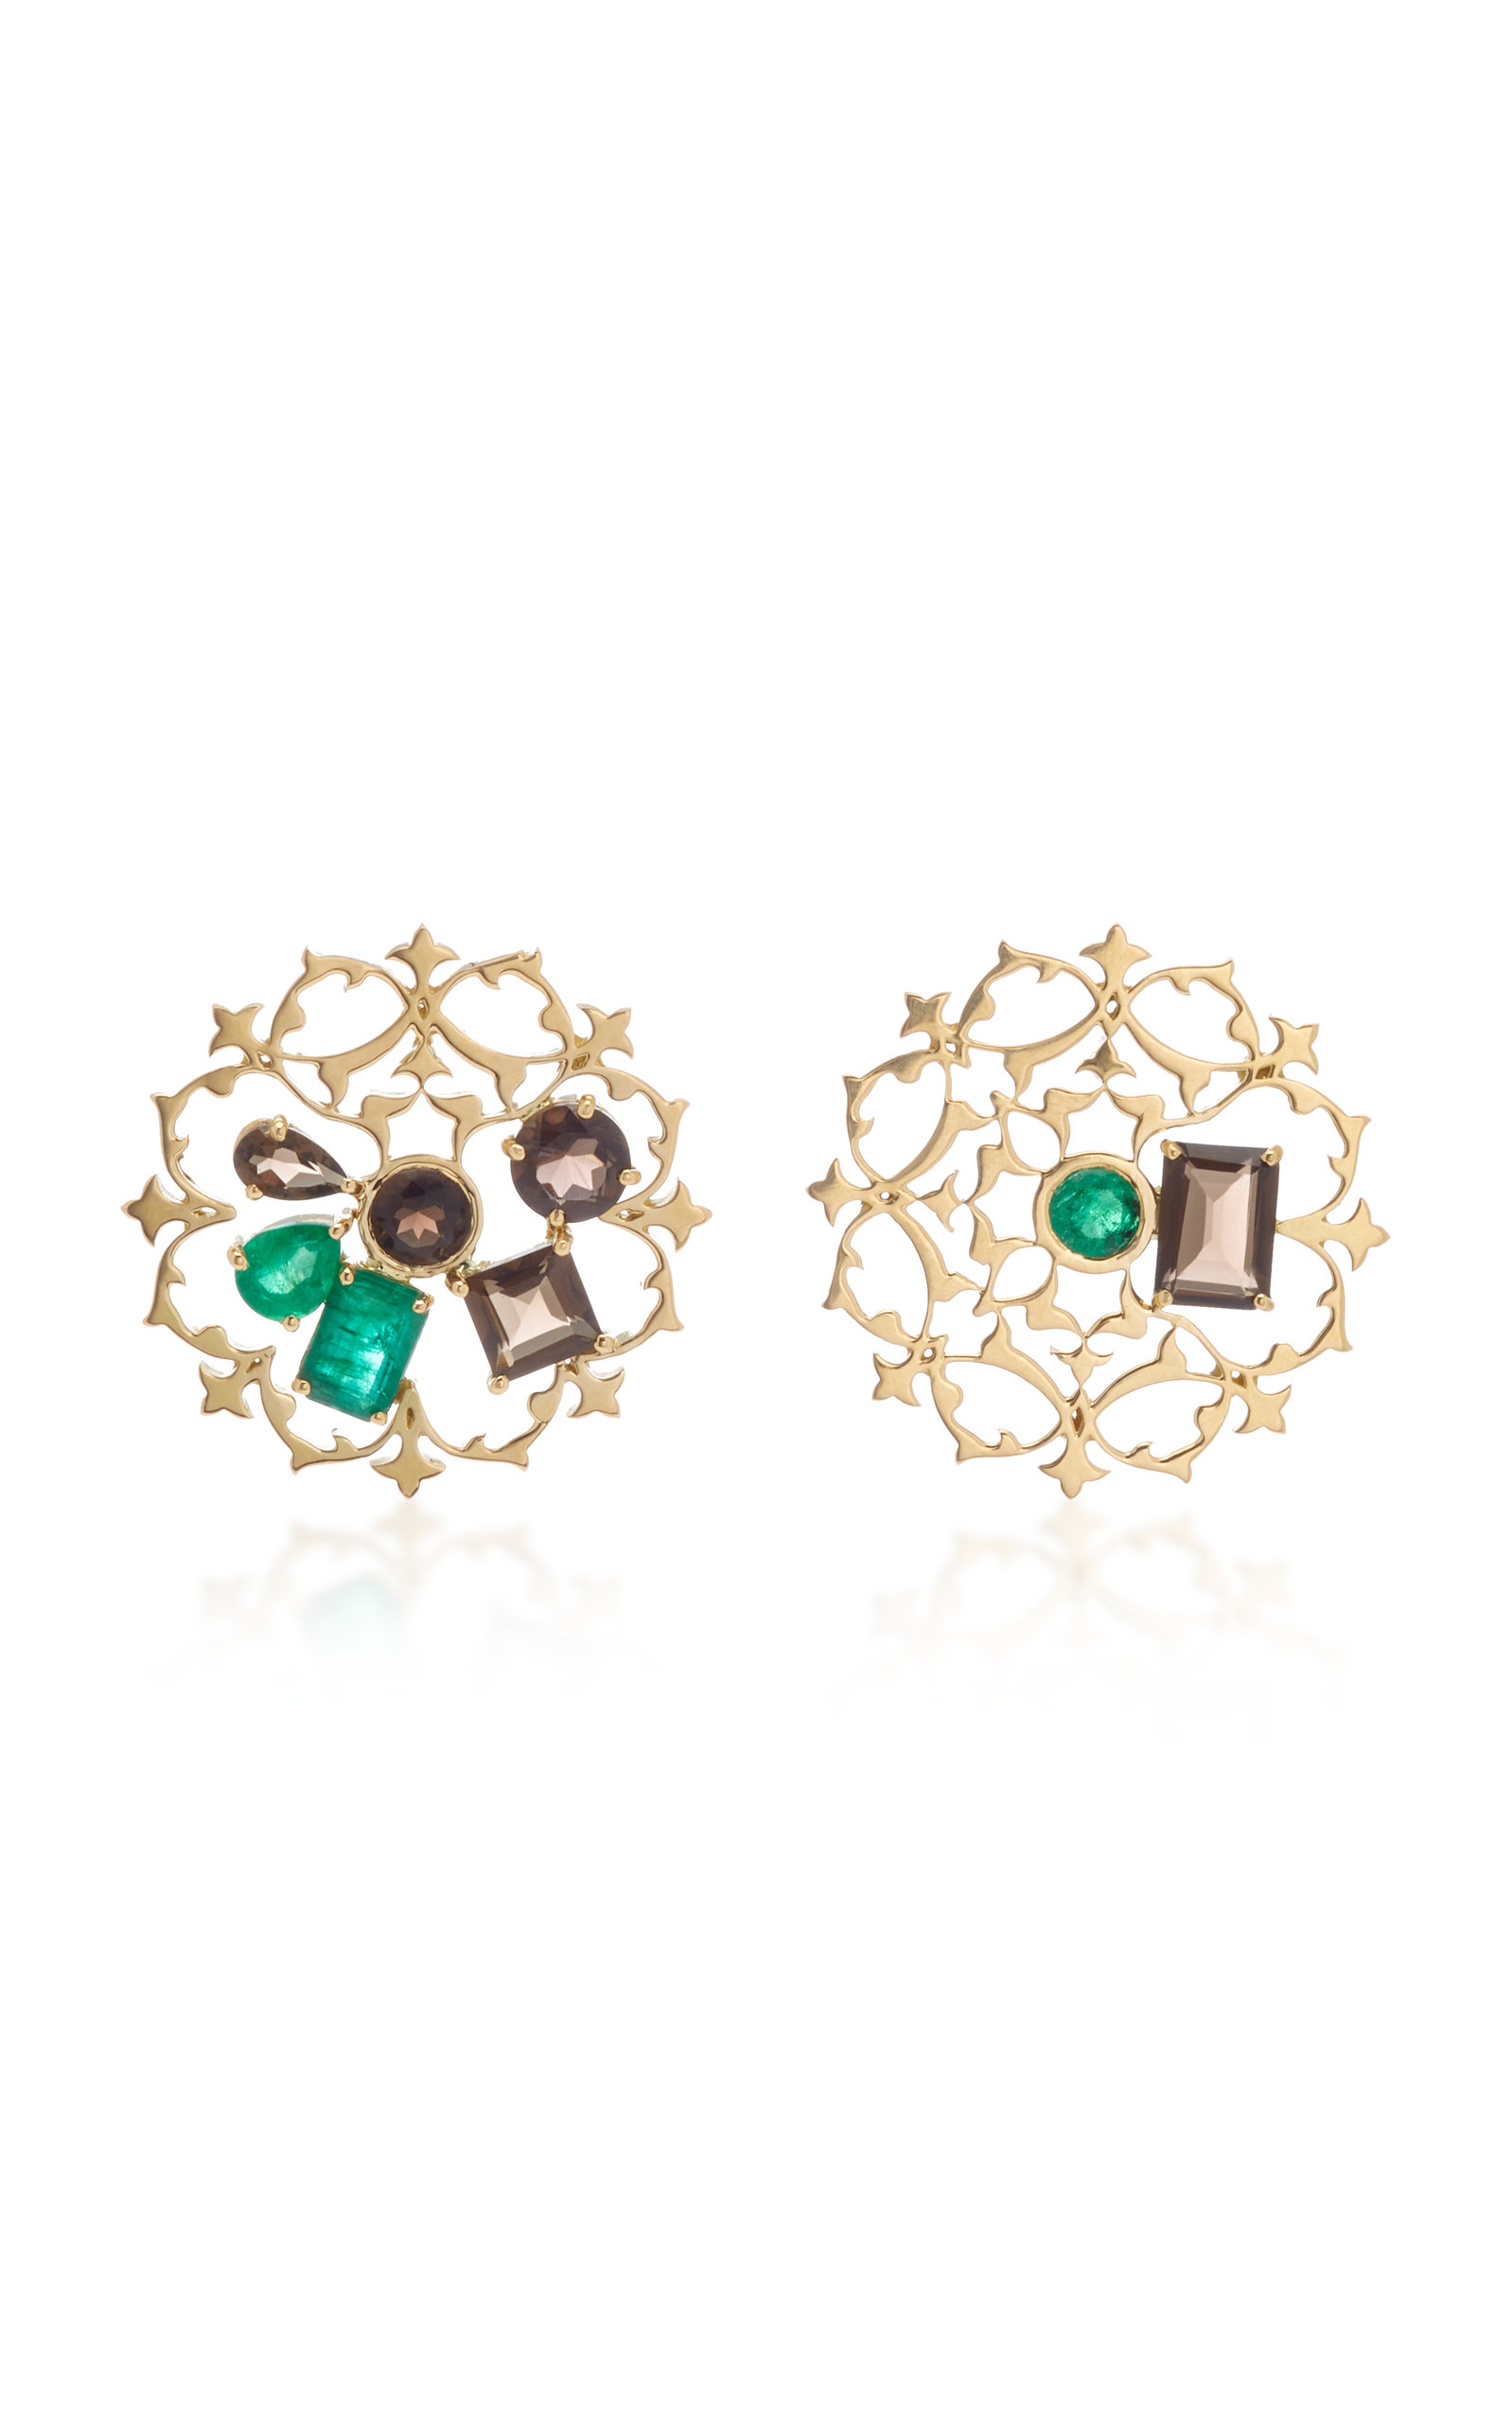 Women's Tranquility Mismatched 18K Gold; Quartz and Emerald Earrings